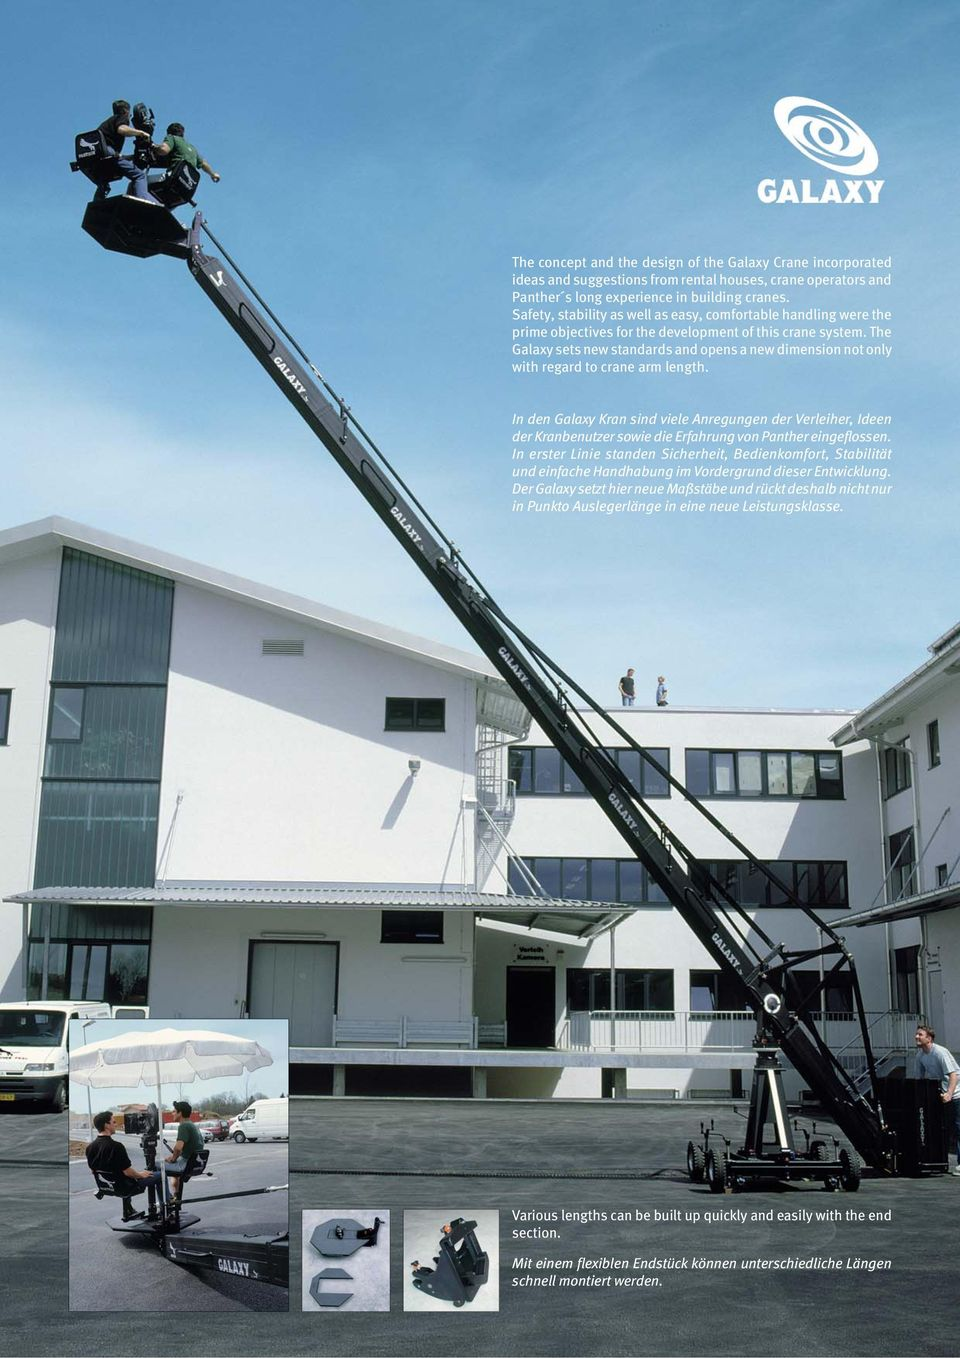 The Galaxy sets new standards and opens a new dimension not only with regard to crane arm length.